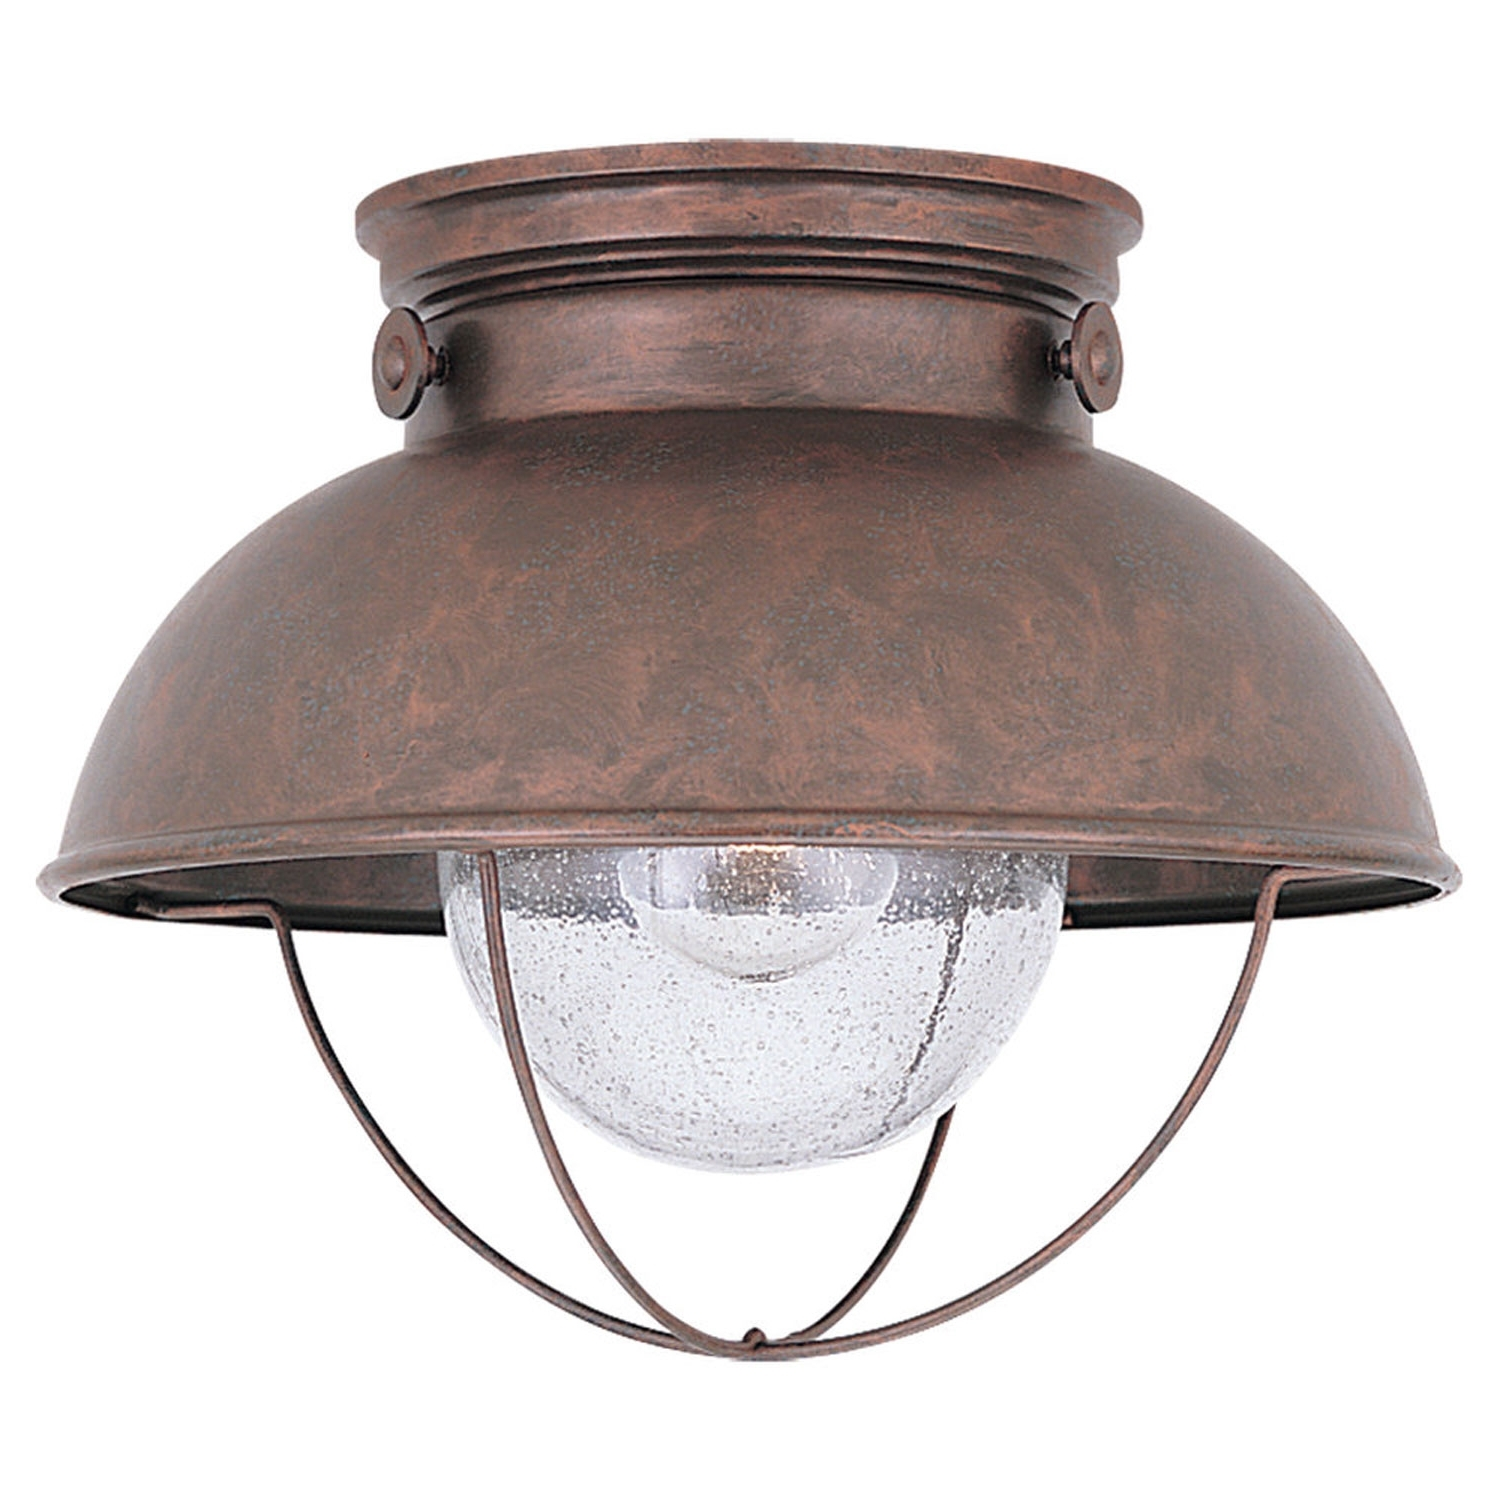 Outdoor Ceiling Spotlights With Regard To Preferred Outdoor Ceiling Lighting (View 6 of 20)